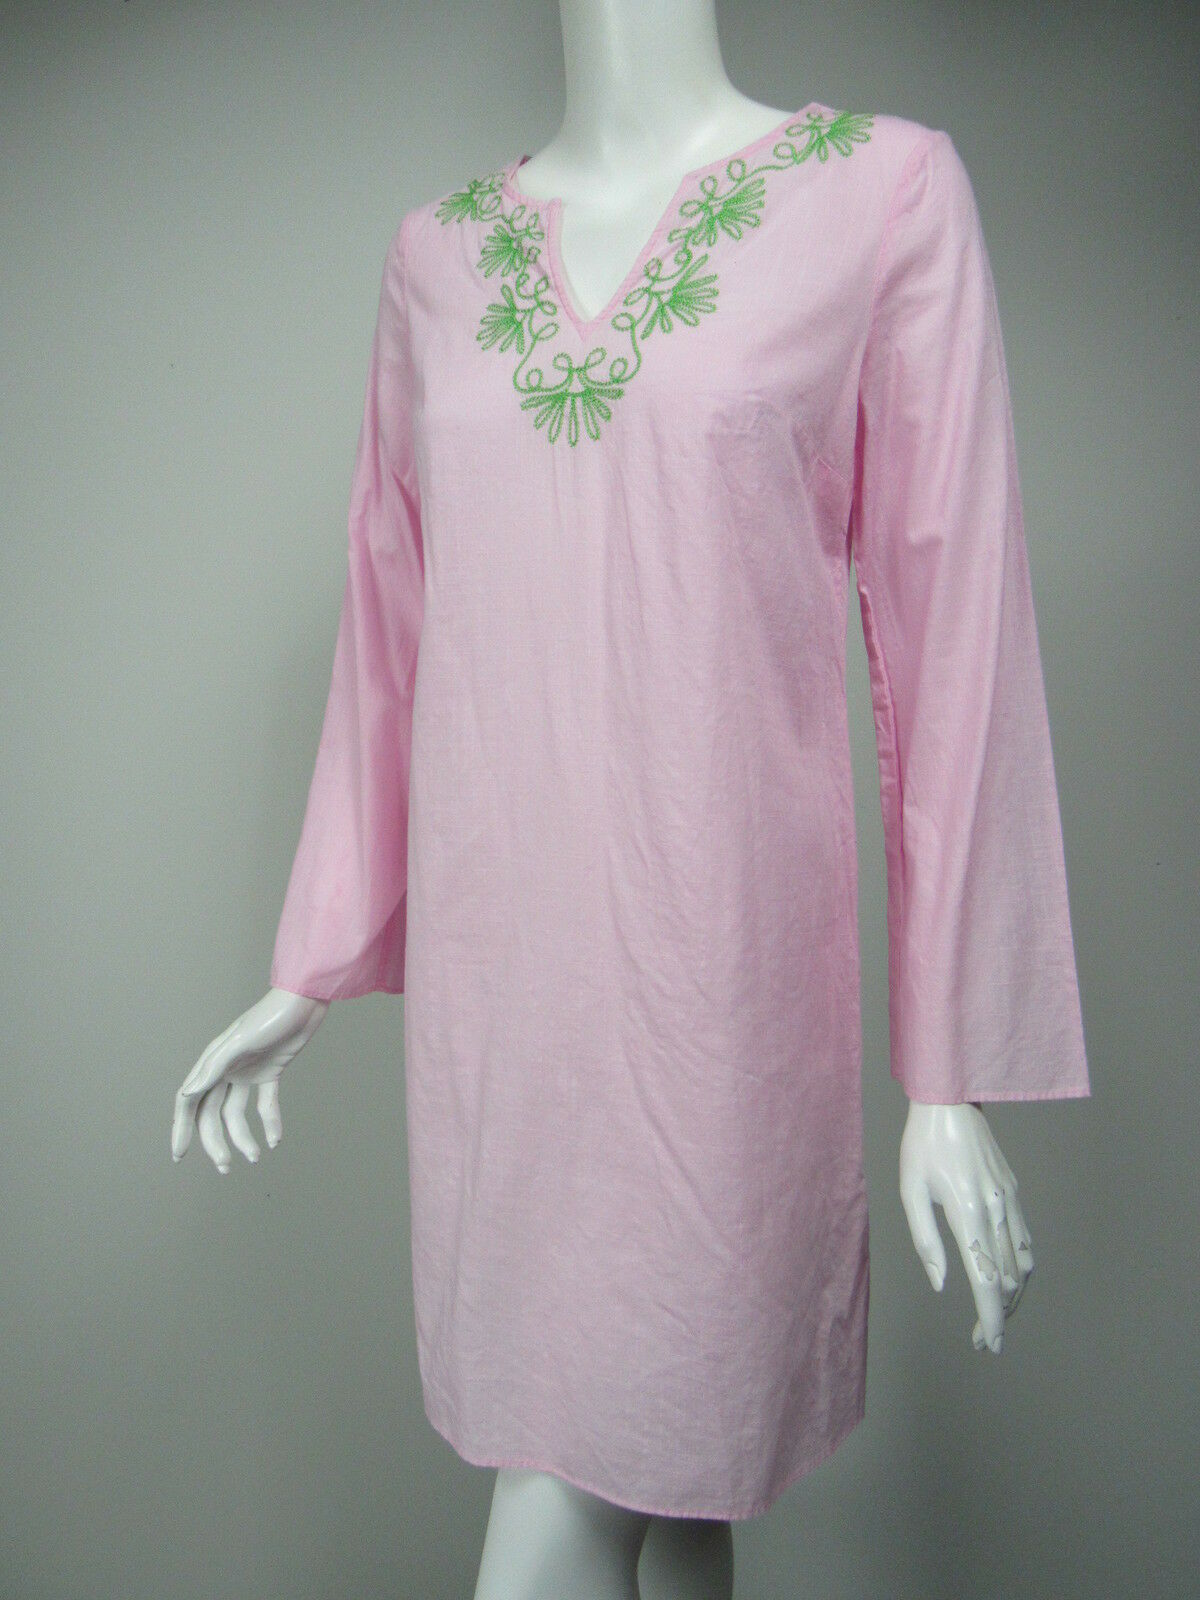 LILLY PULITZER Elina Tunic Pink Cotton Green Embroidery Cover-up Dress sz XS